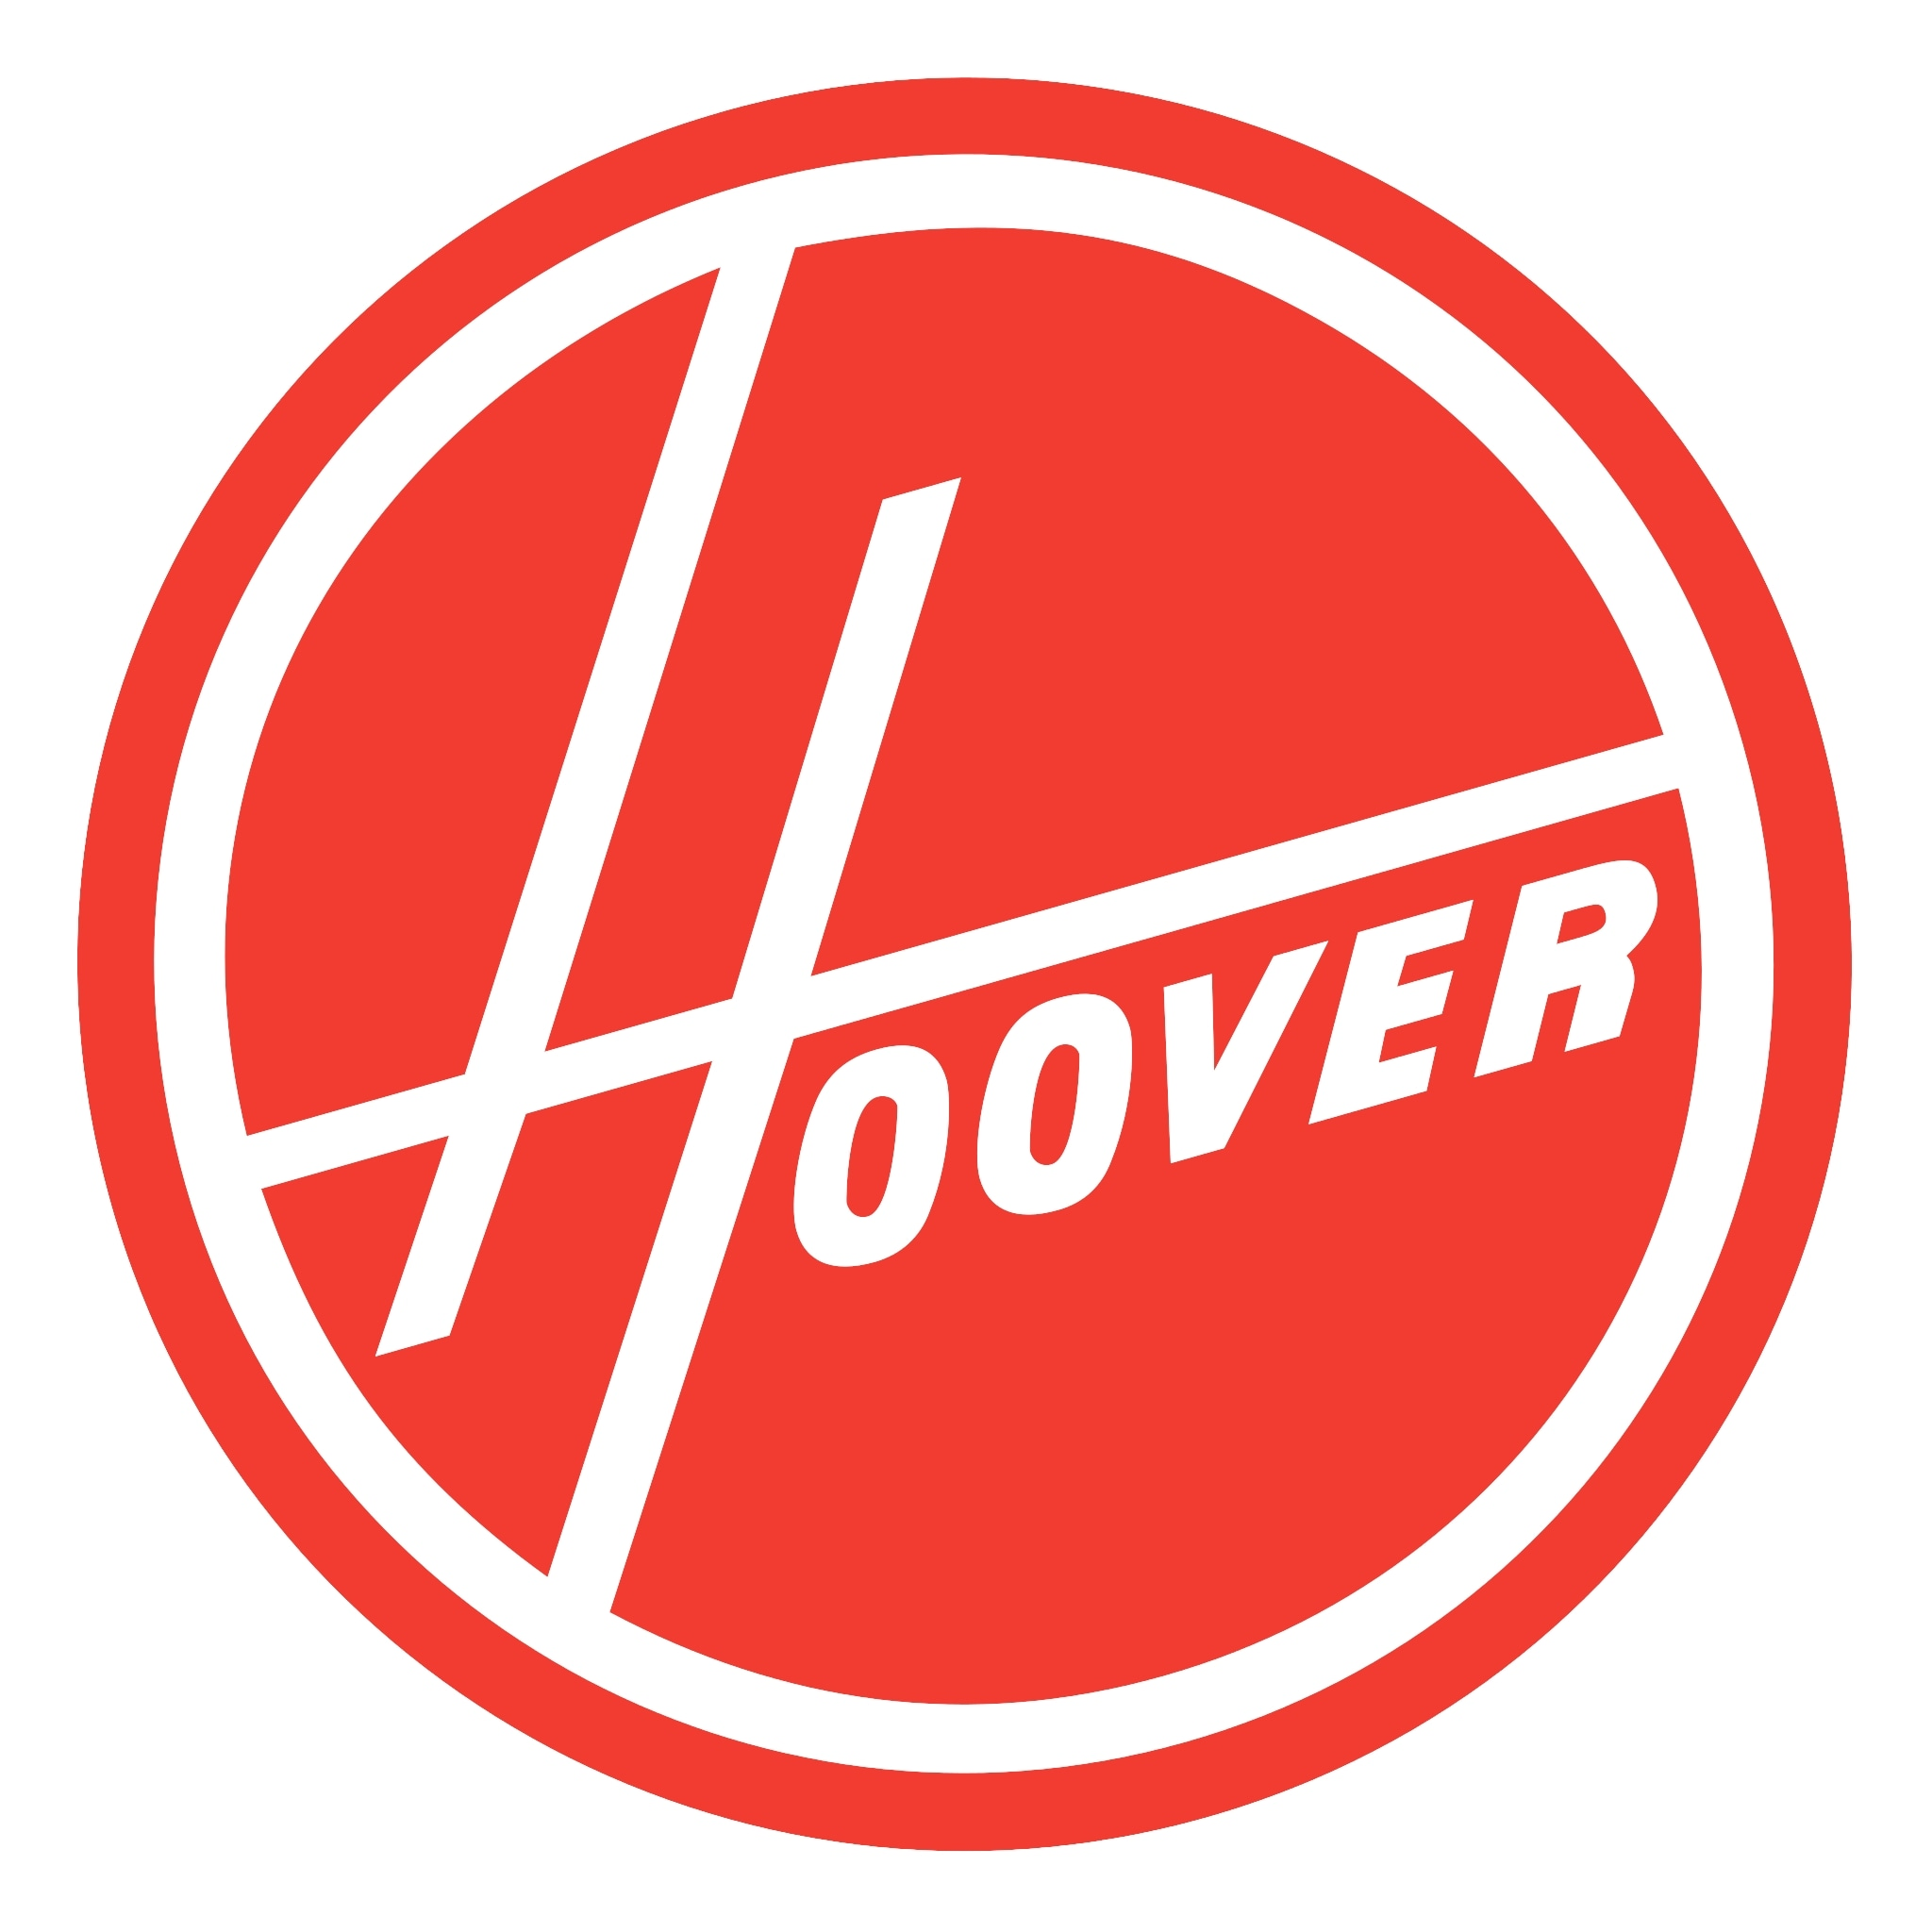 Hoover coupon codes